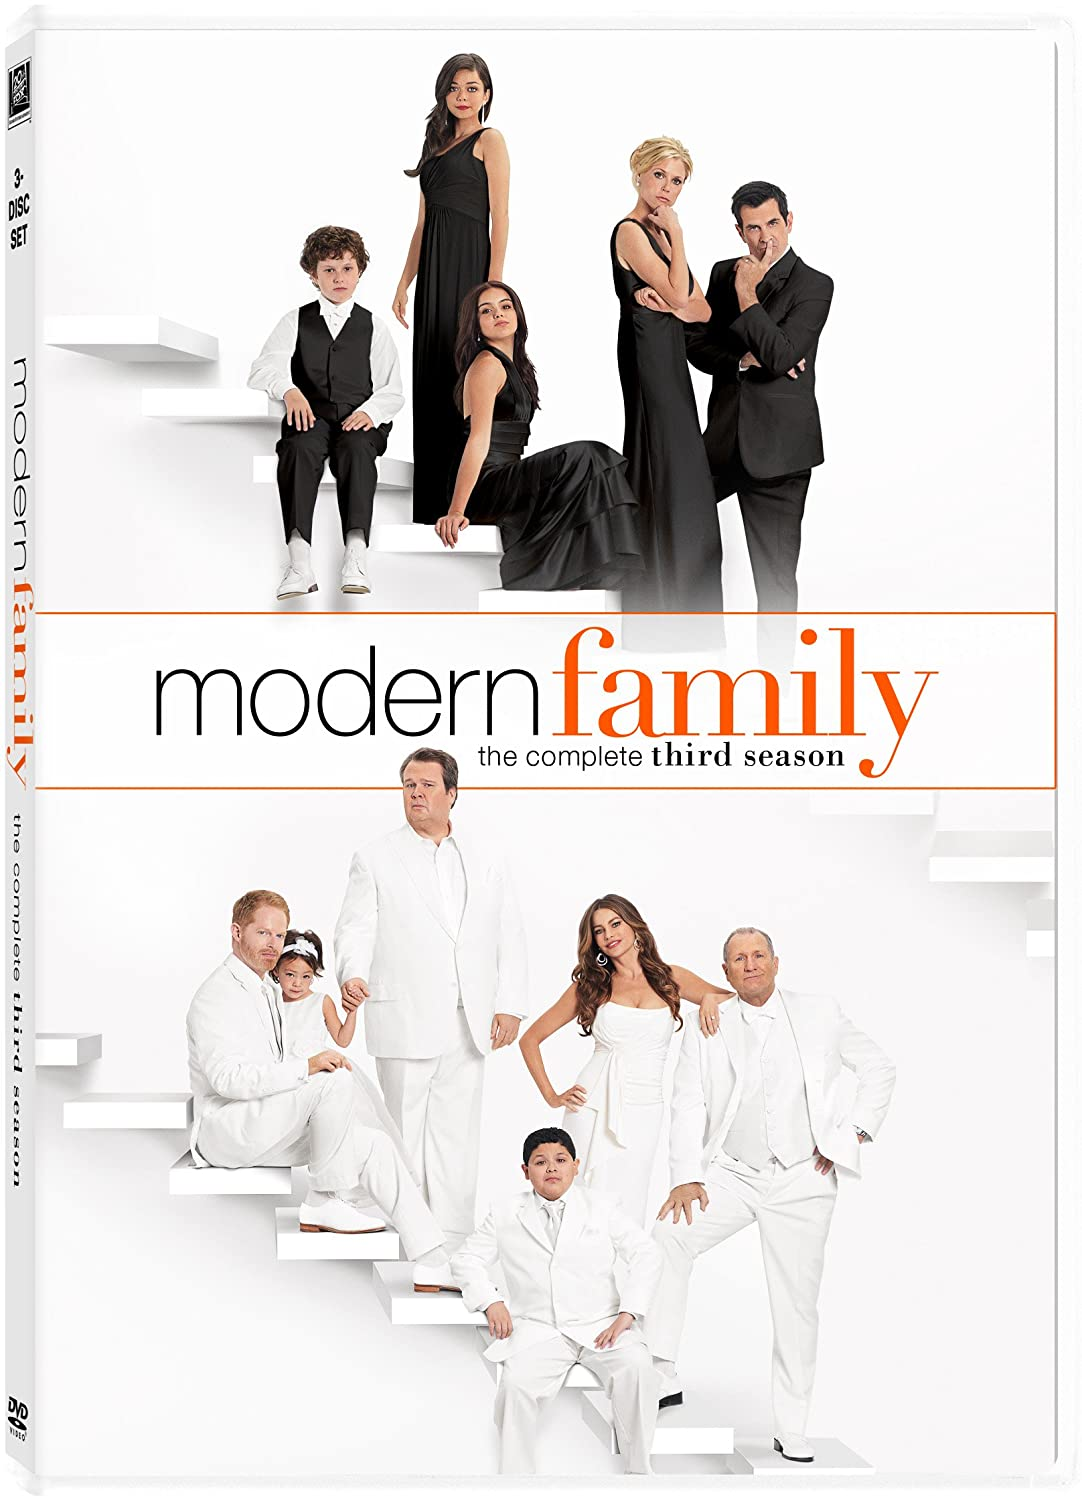 Modern Family: The Complete Third Season Ed O'Neill 25524684 Comedies Movie